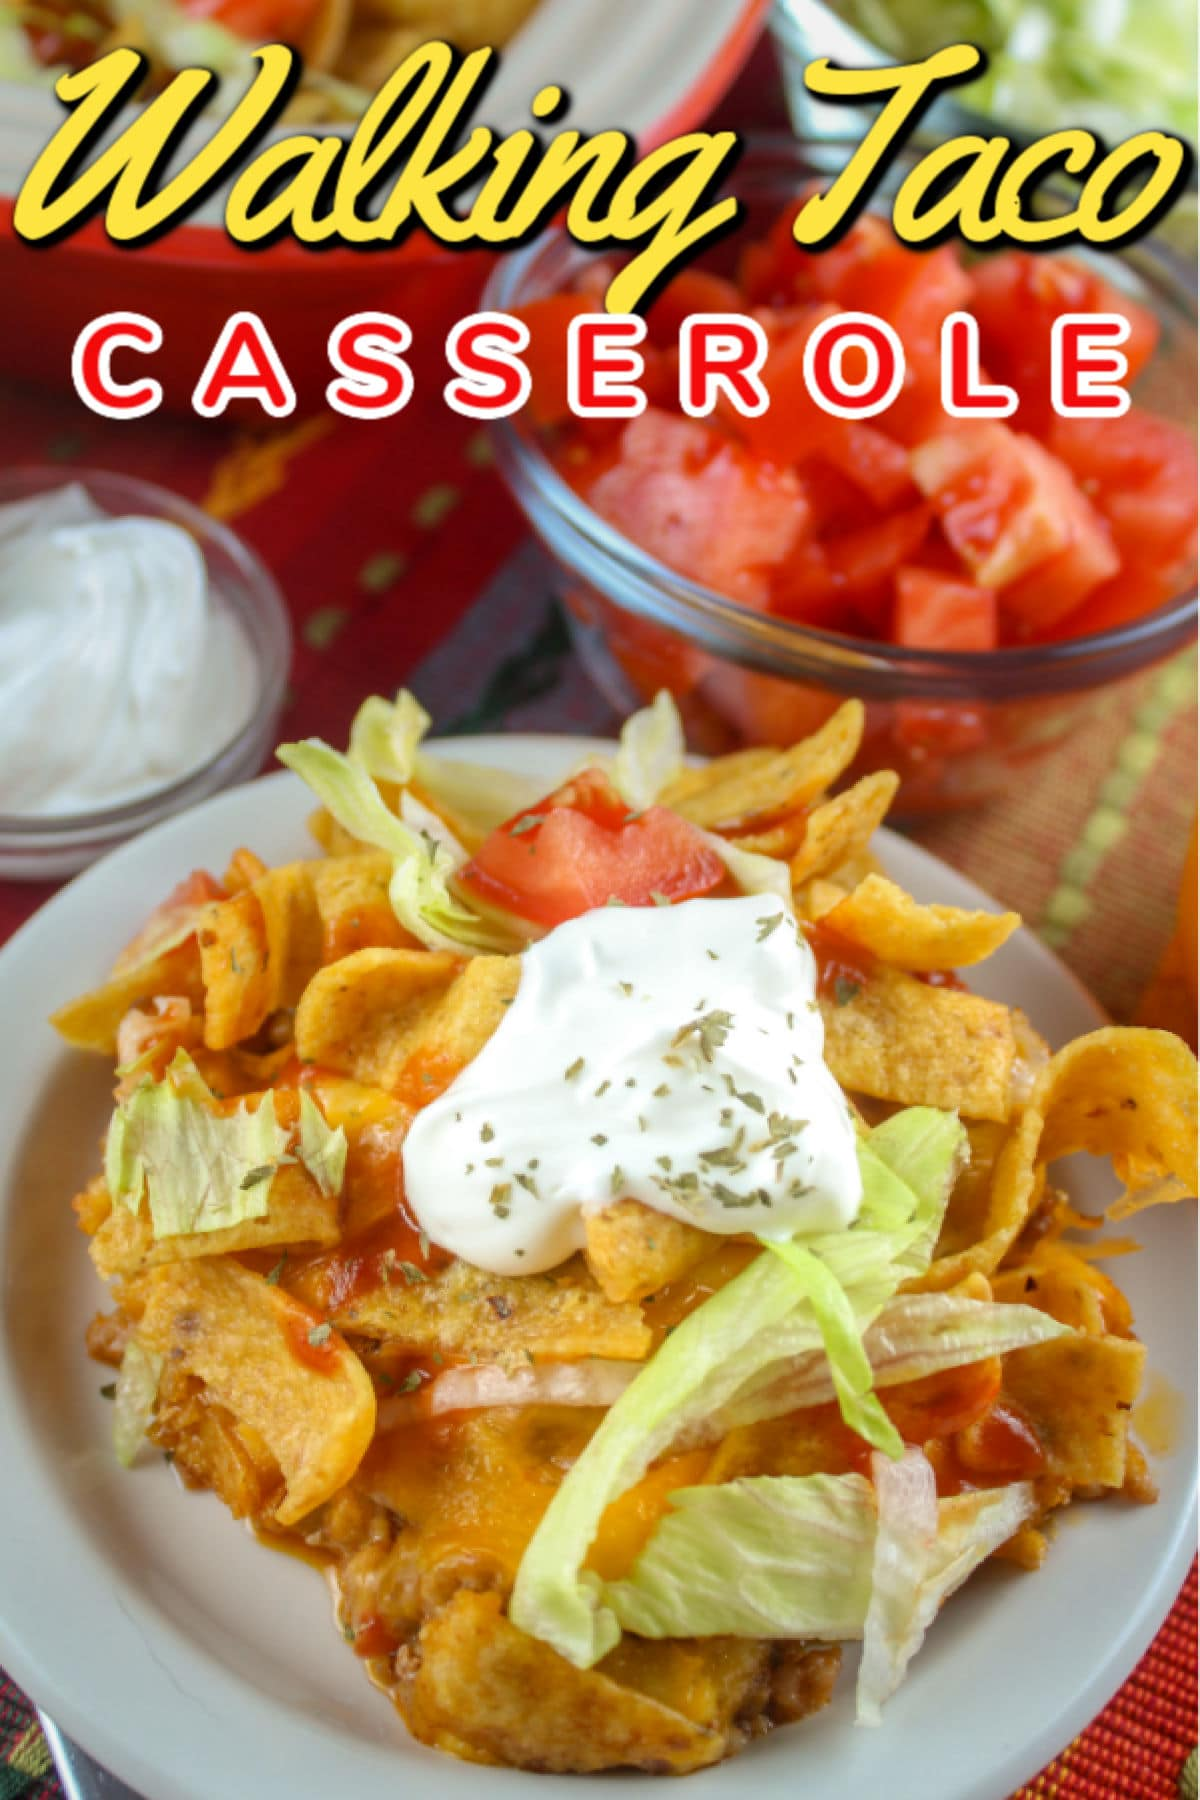 It's football season again and I still remember making Walking Tacos at the football game concession stand. But as a grown up - I don't need to hold a bag of chips for dinner so I made this delicious Walking Taco Casserole!  via @foodhussy